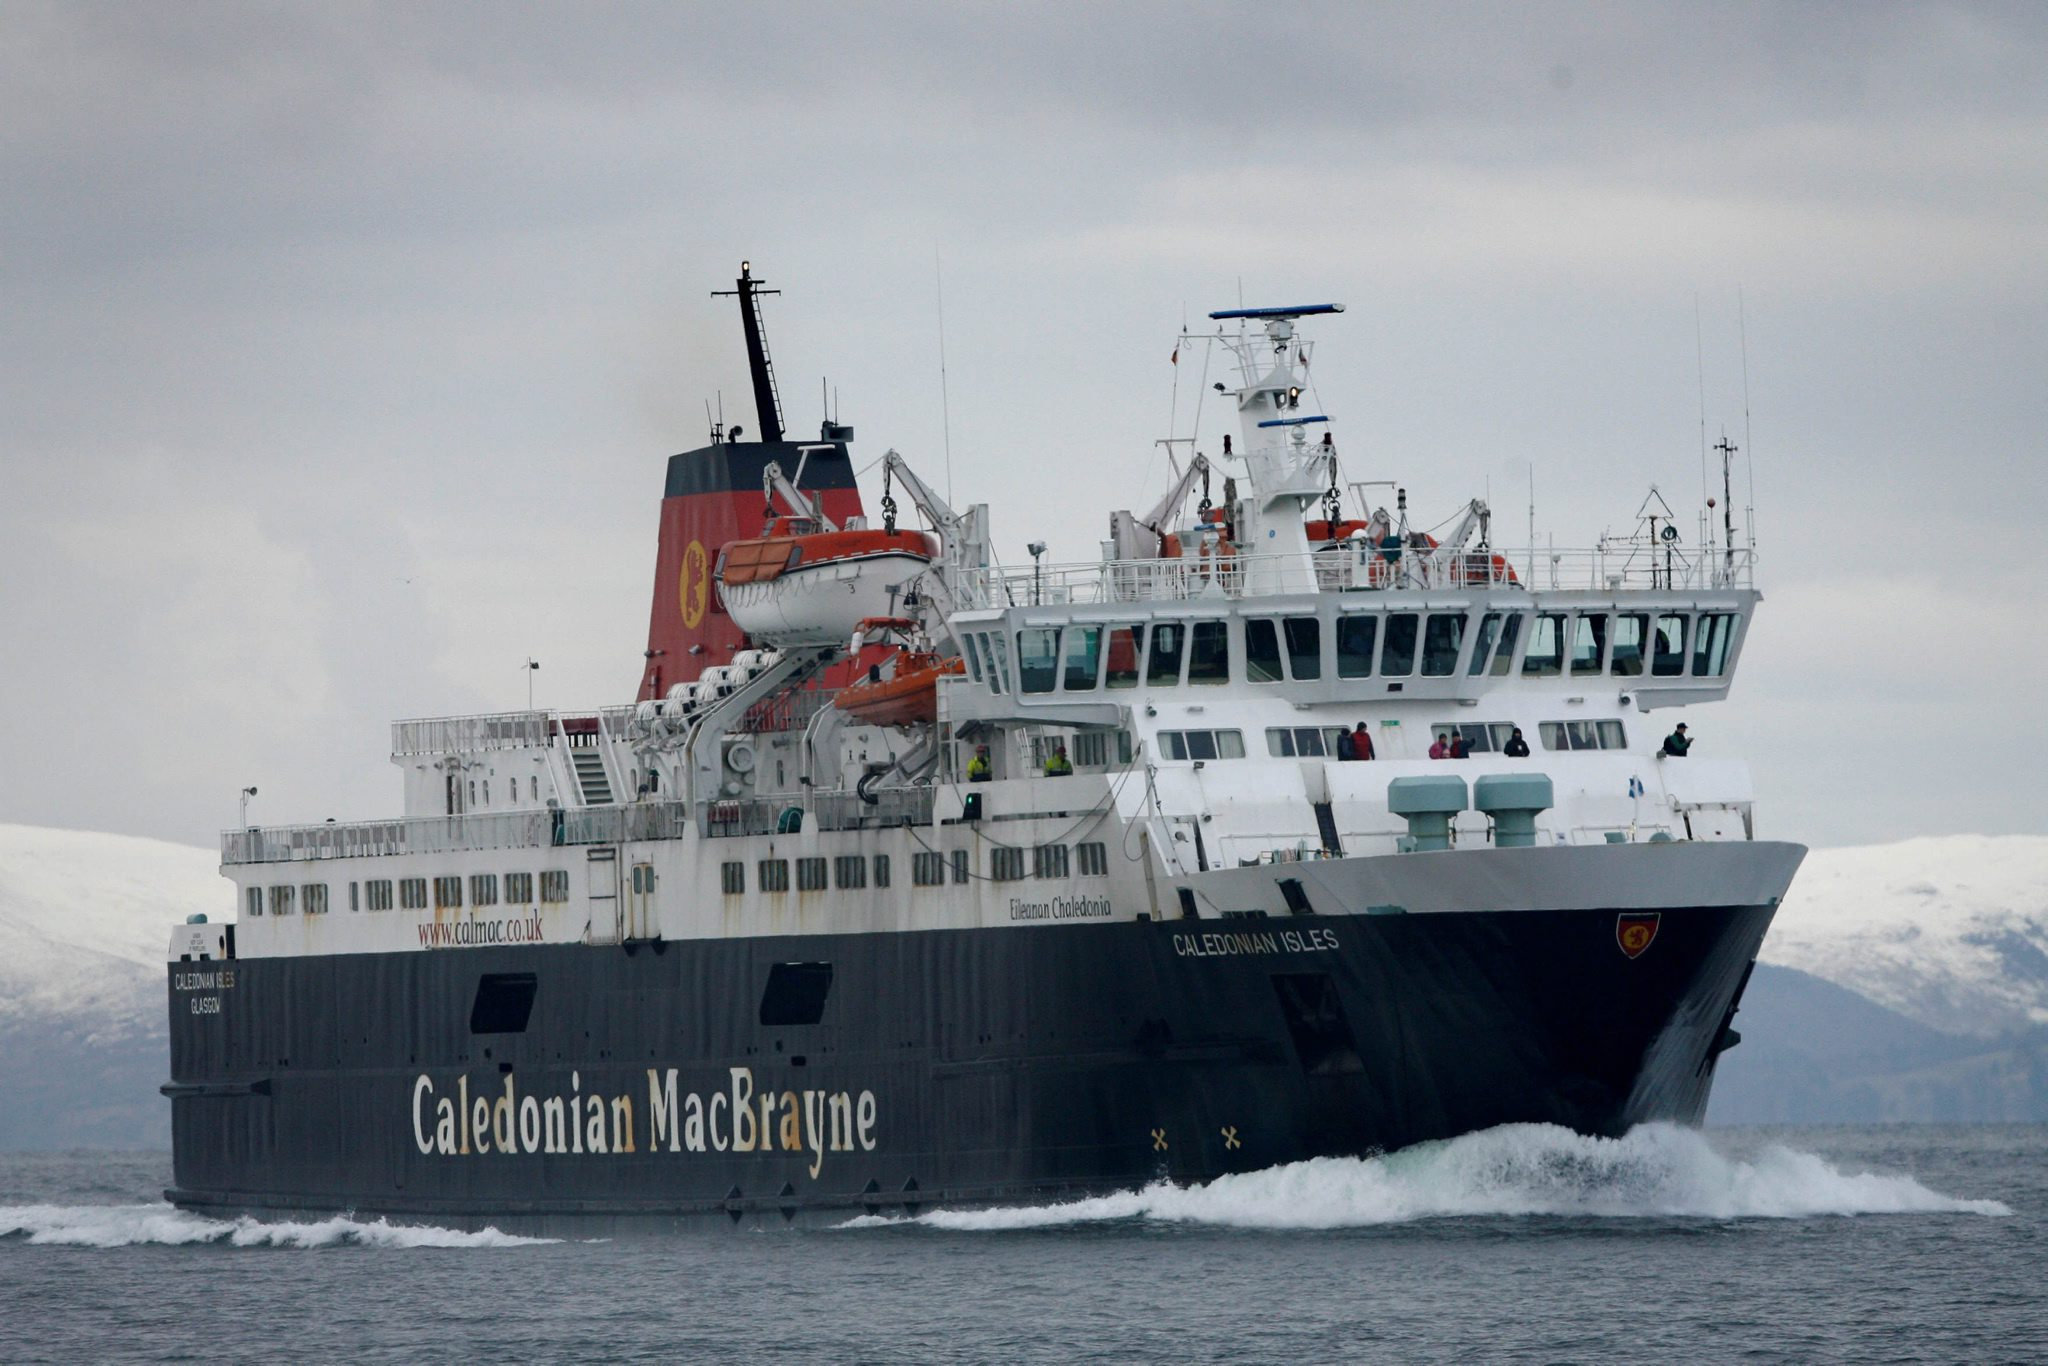 The Caledonian Isles